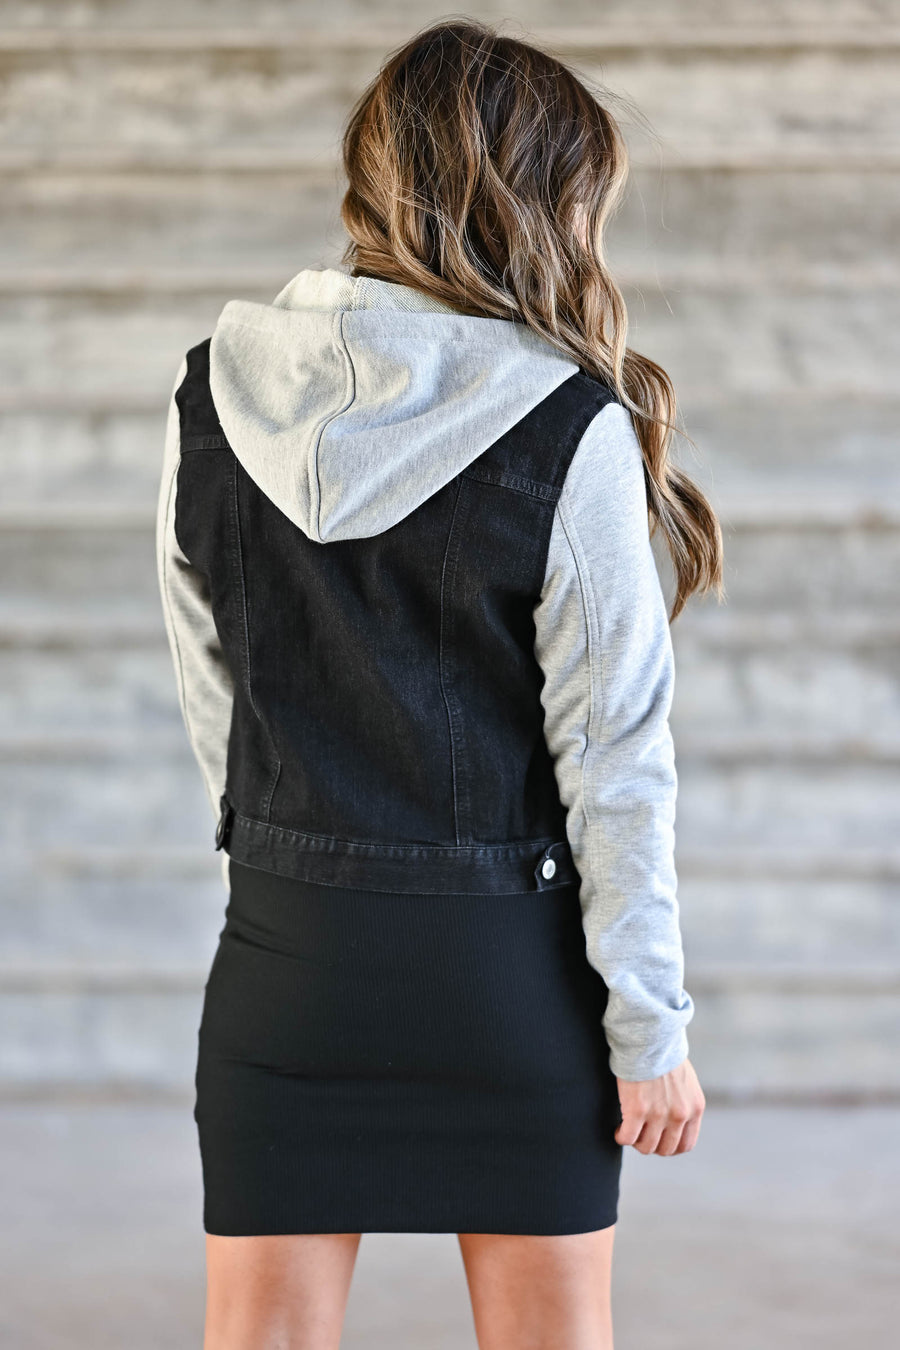 Her Good Side Hooded Denim Jacket - Black trendy womens hooded denim jacket, grey sleeves closet candy front